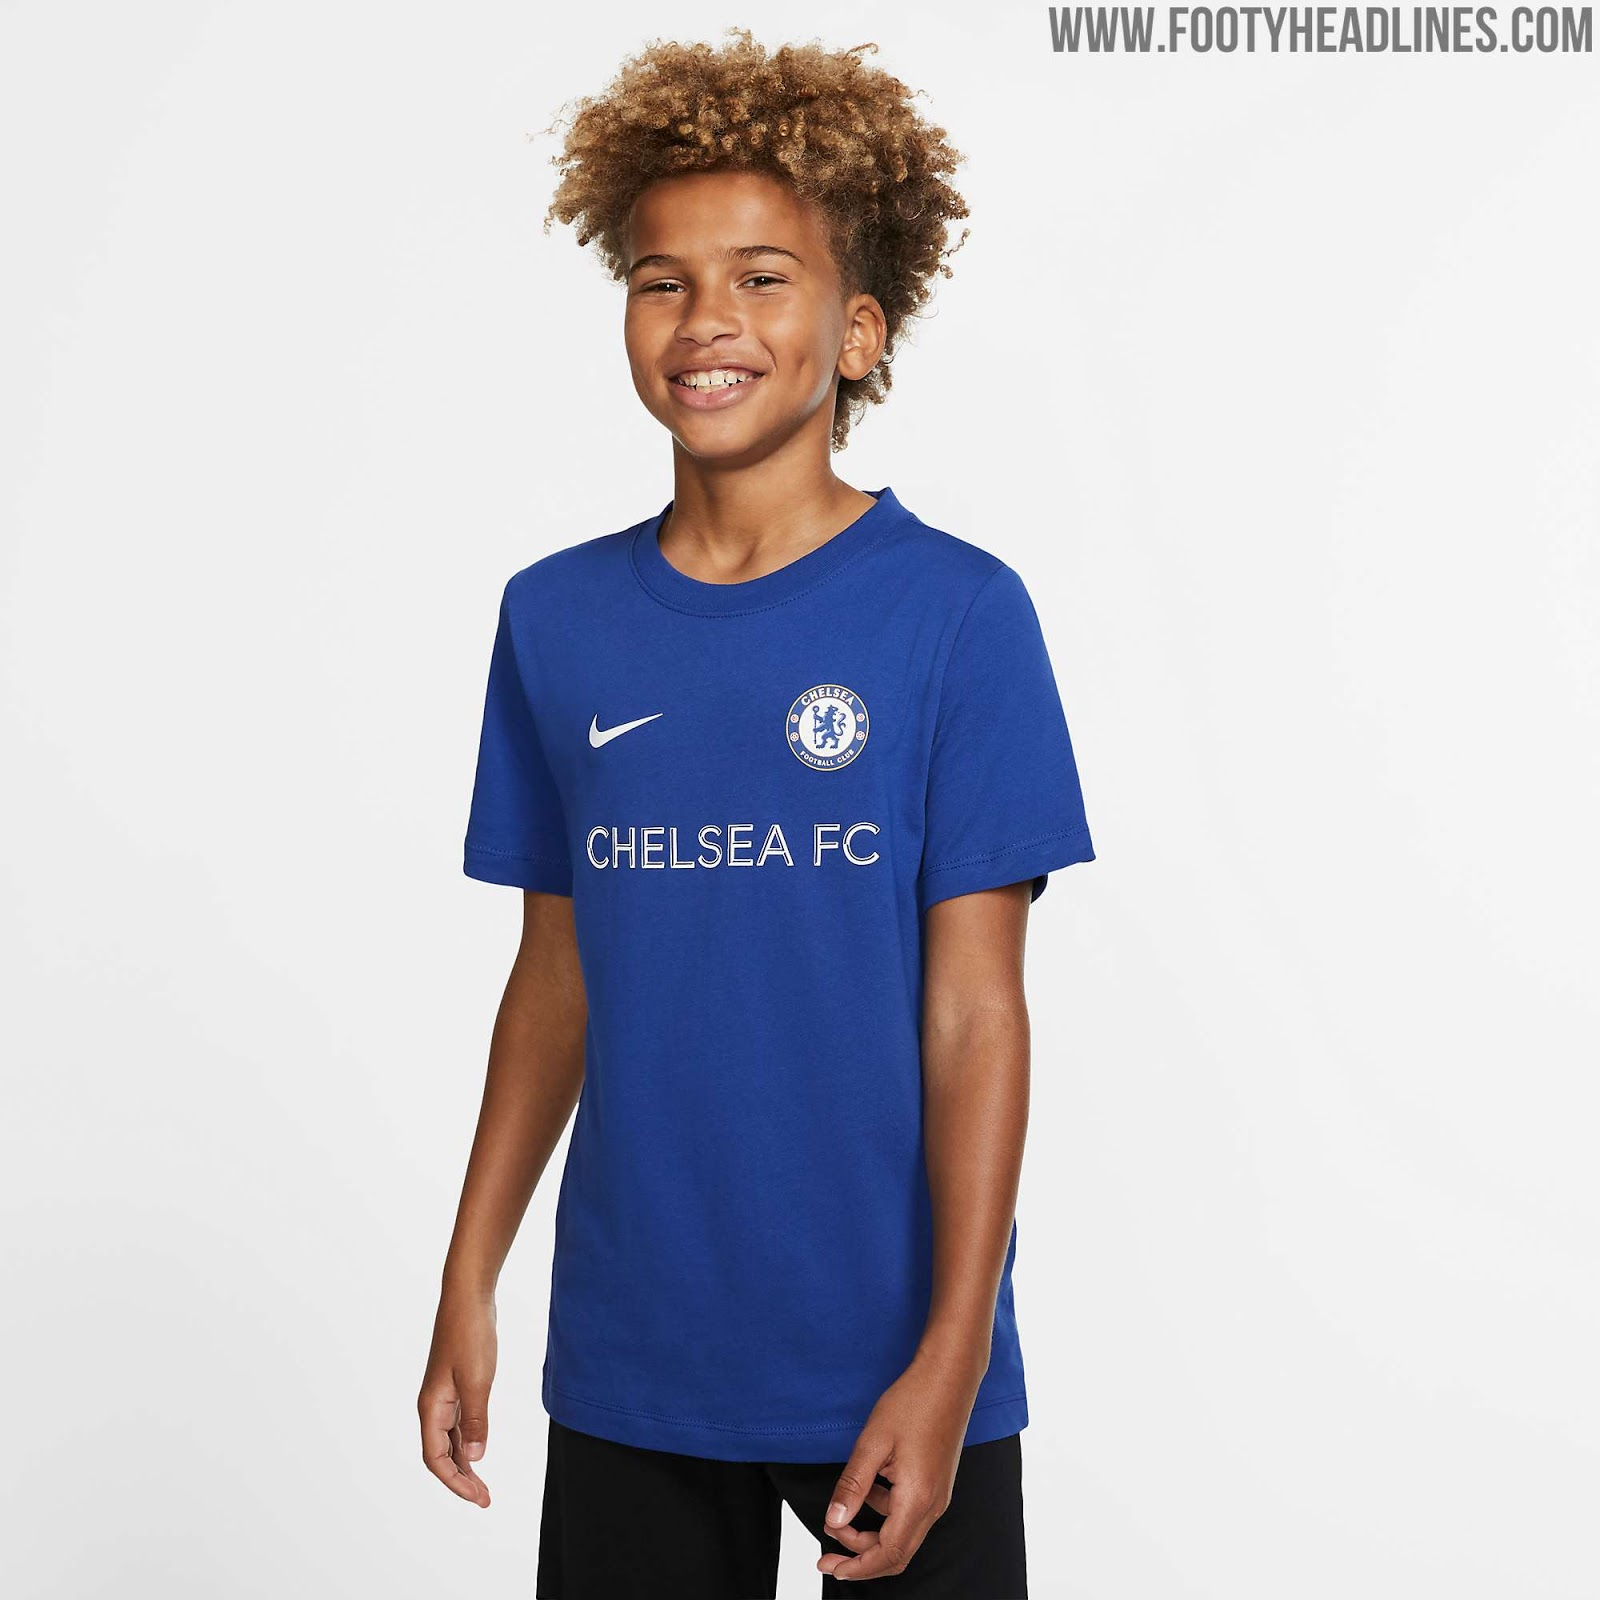 Chelsea Fc Latest News: Cheap Nike 19-20 Home Kit T-Shirts Released